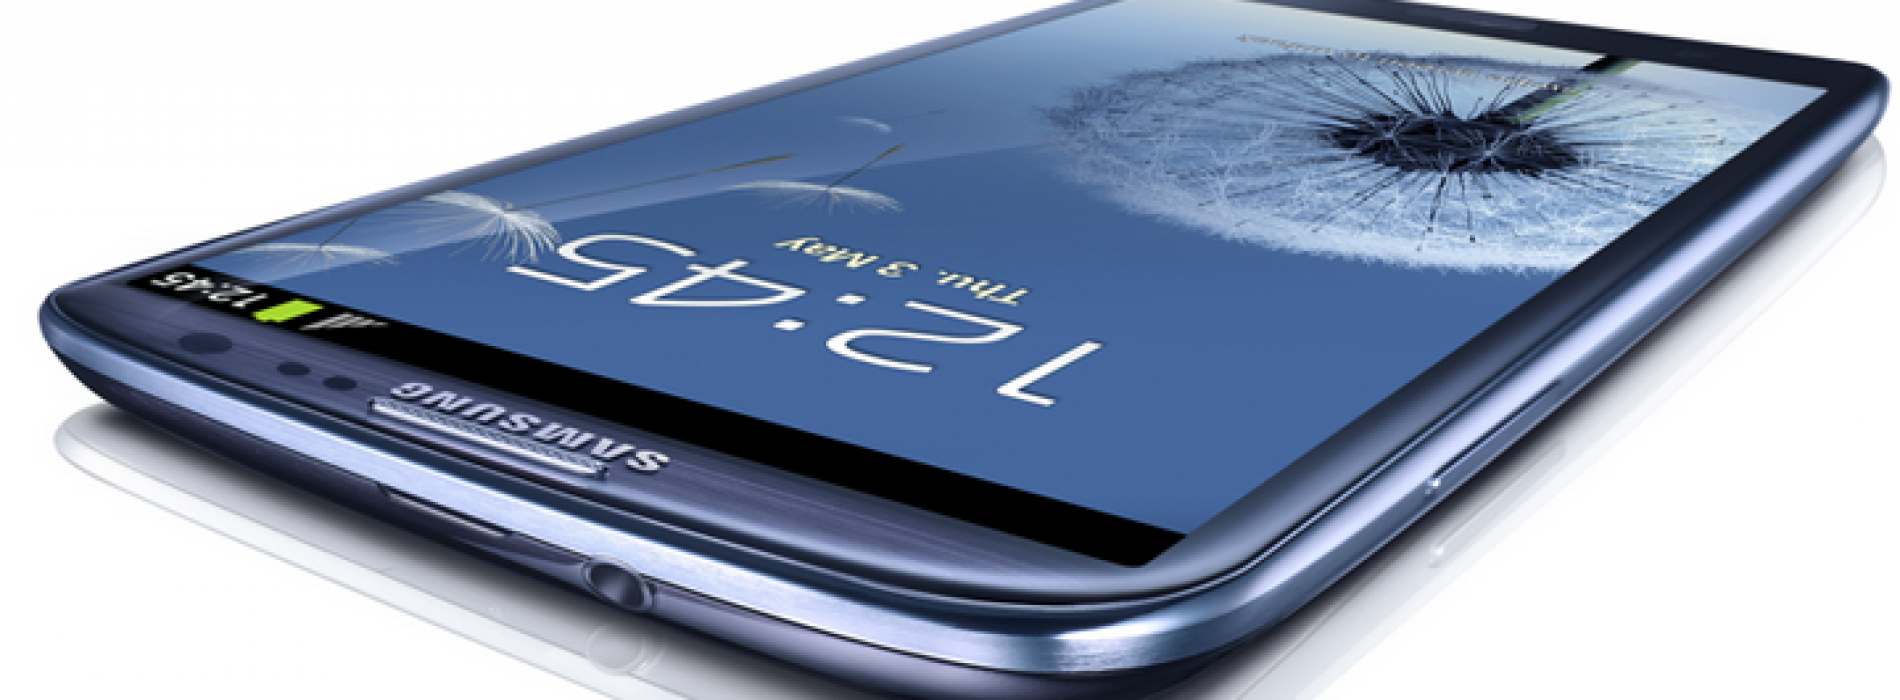 Boost Mobile and Virgin Mobile to offer Samsung Galaxy S 3 in June